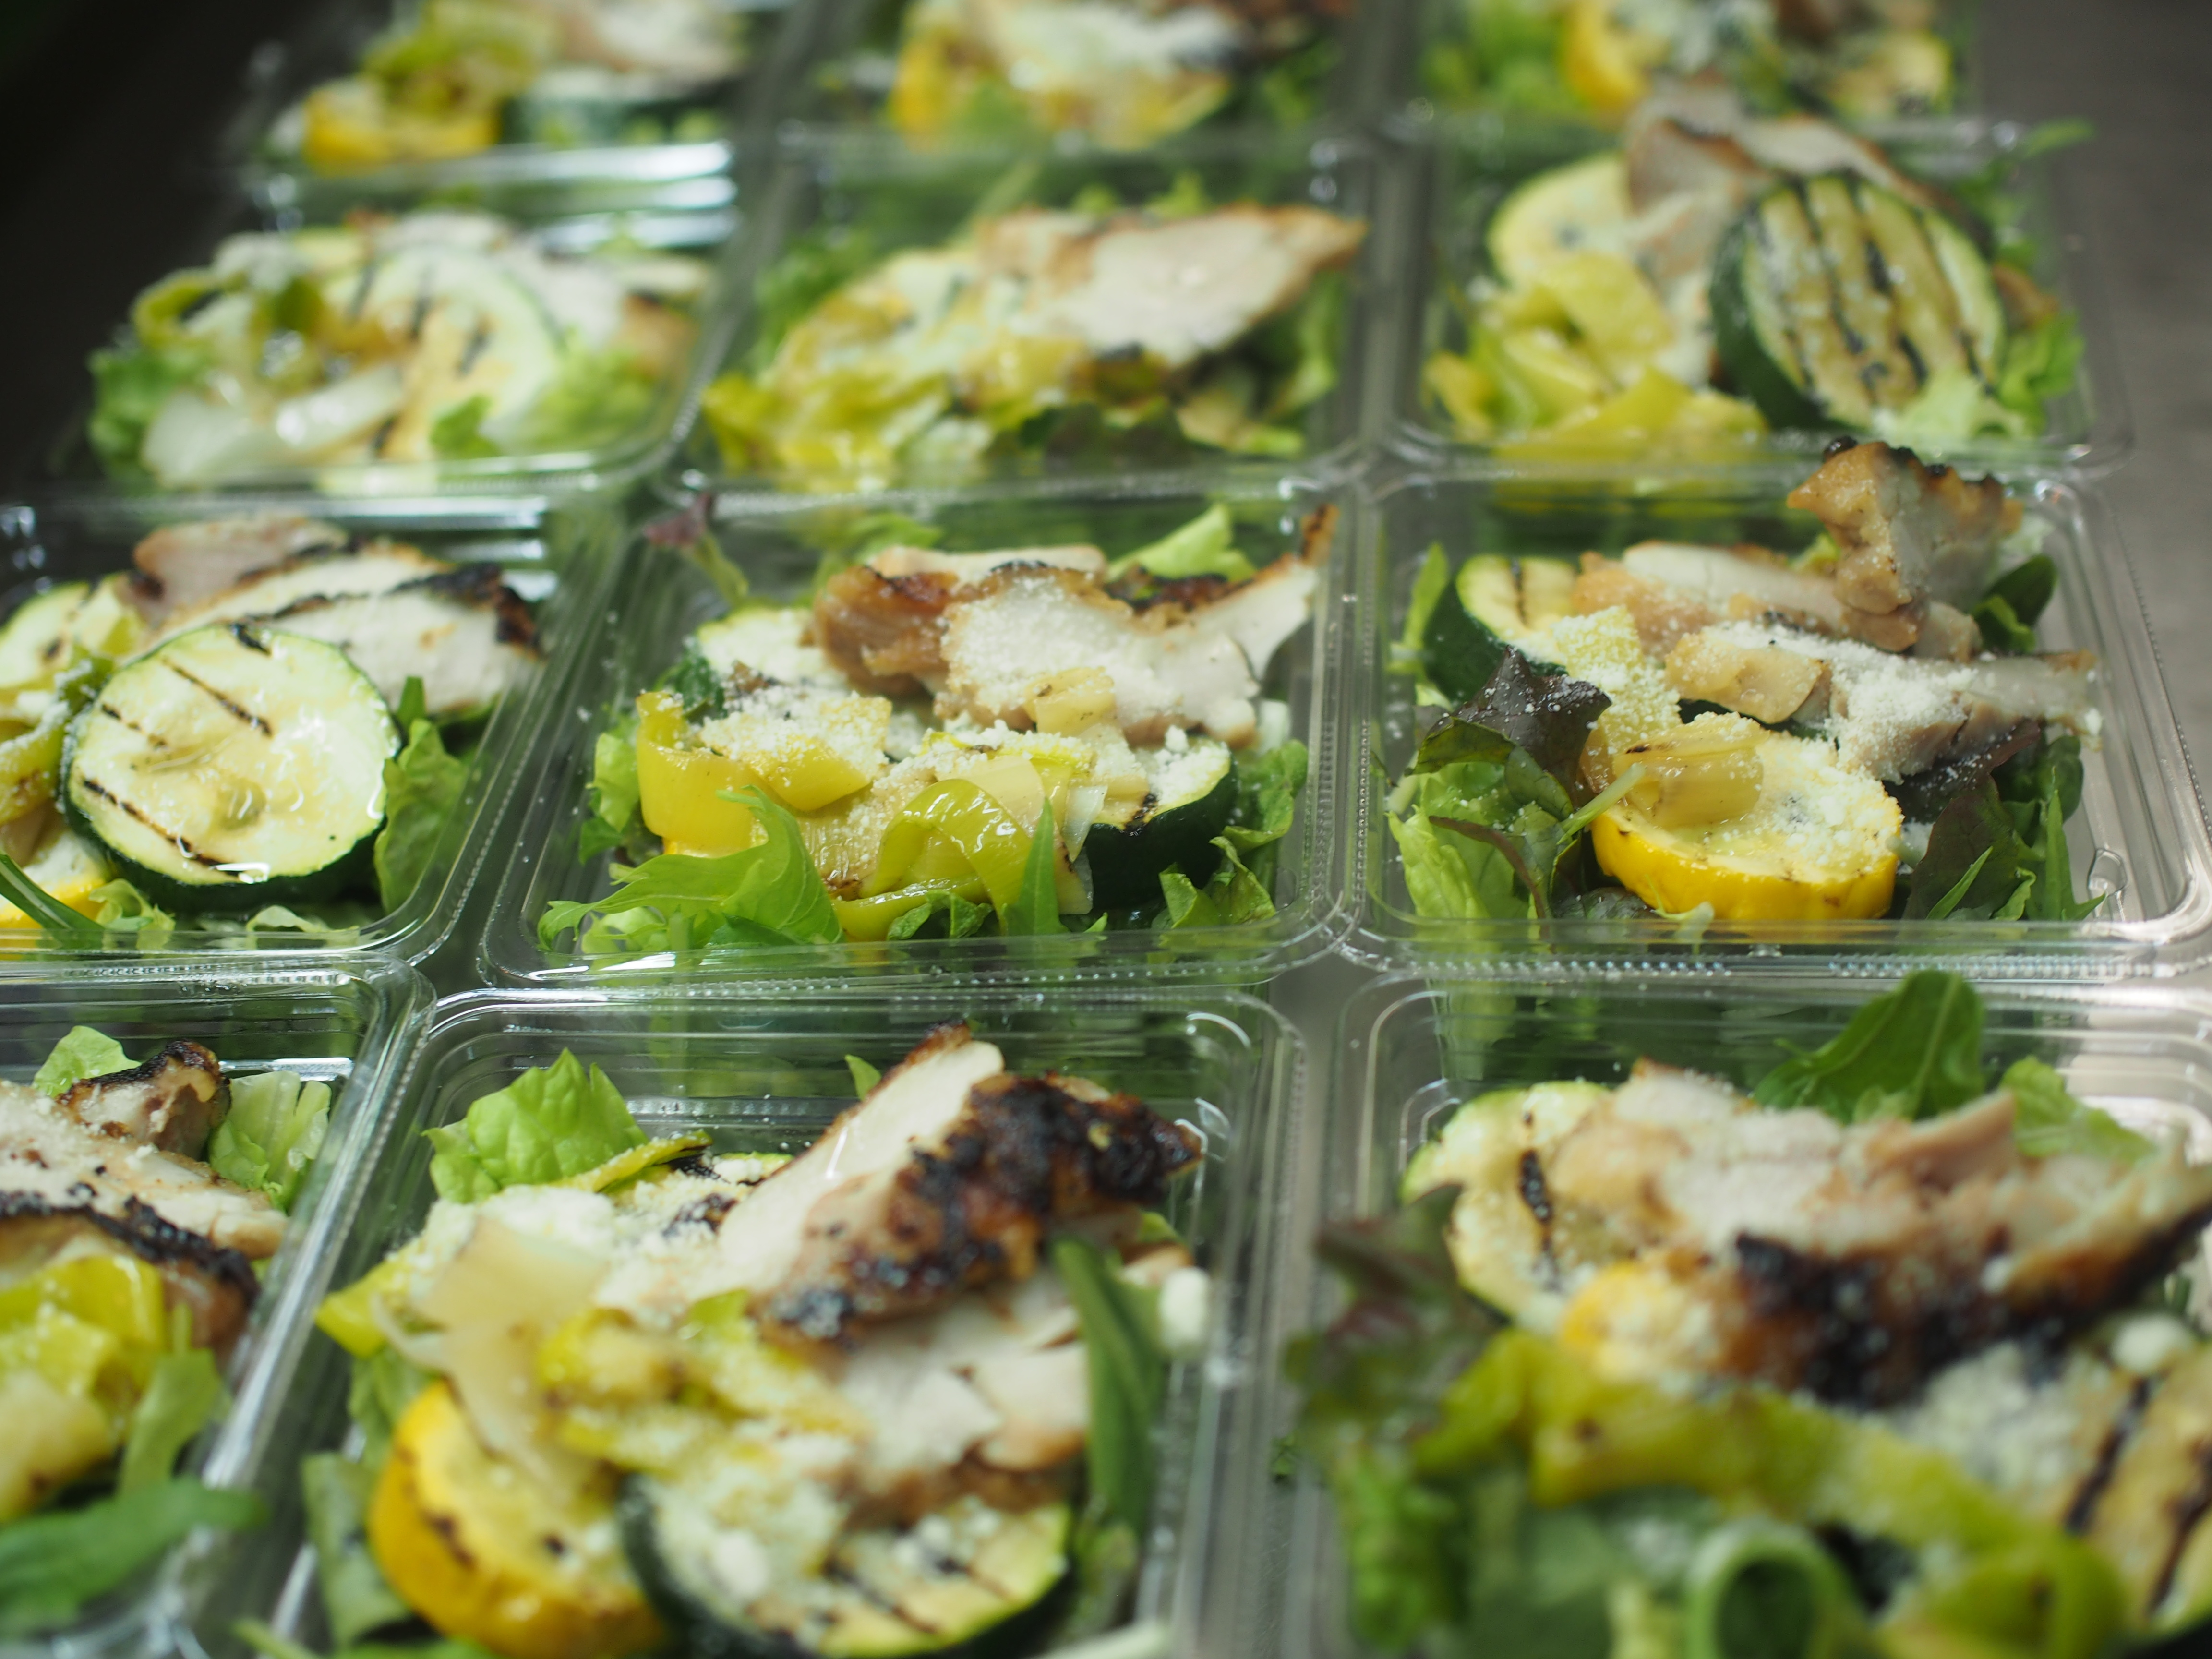 A Sept. 28 recall was expanded this week because the products, such as chicken salad, were used in other products, the USDA says. Some of the products may have been served from the deli counter in grocery stores, the agency says.